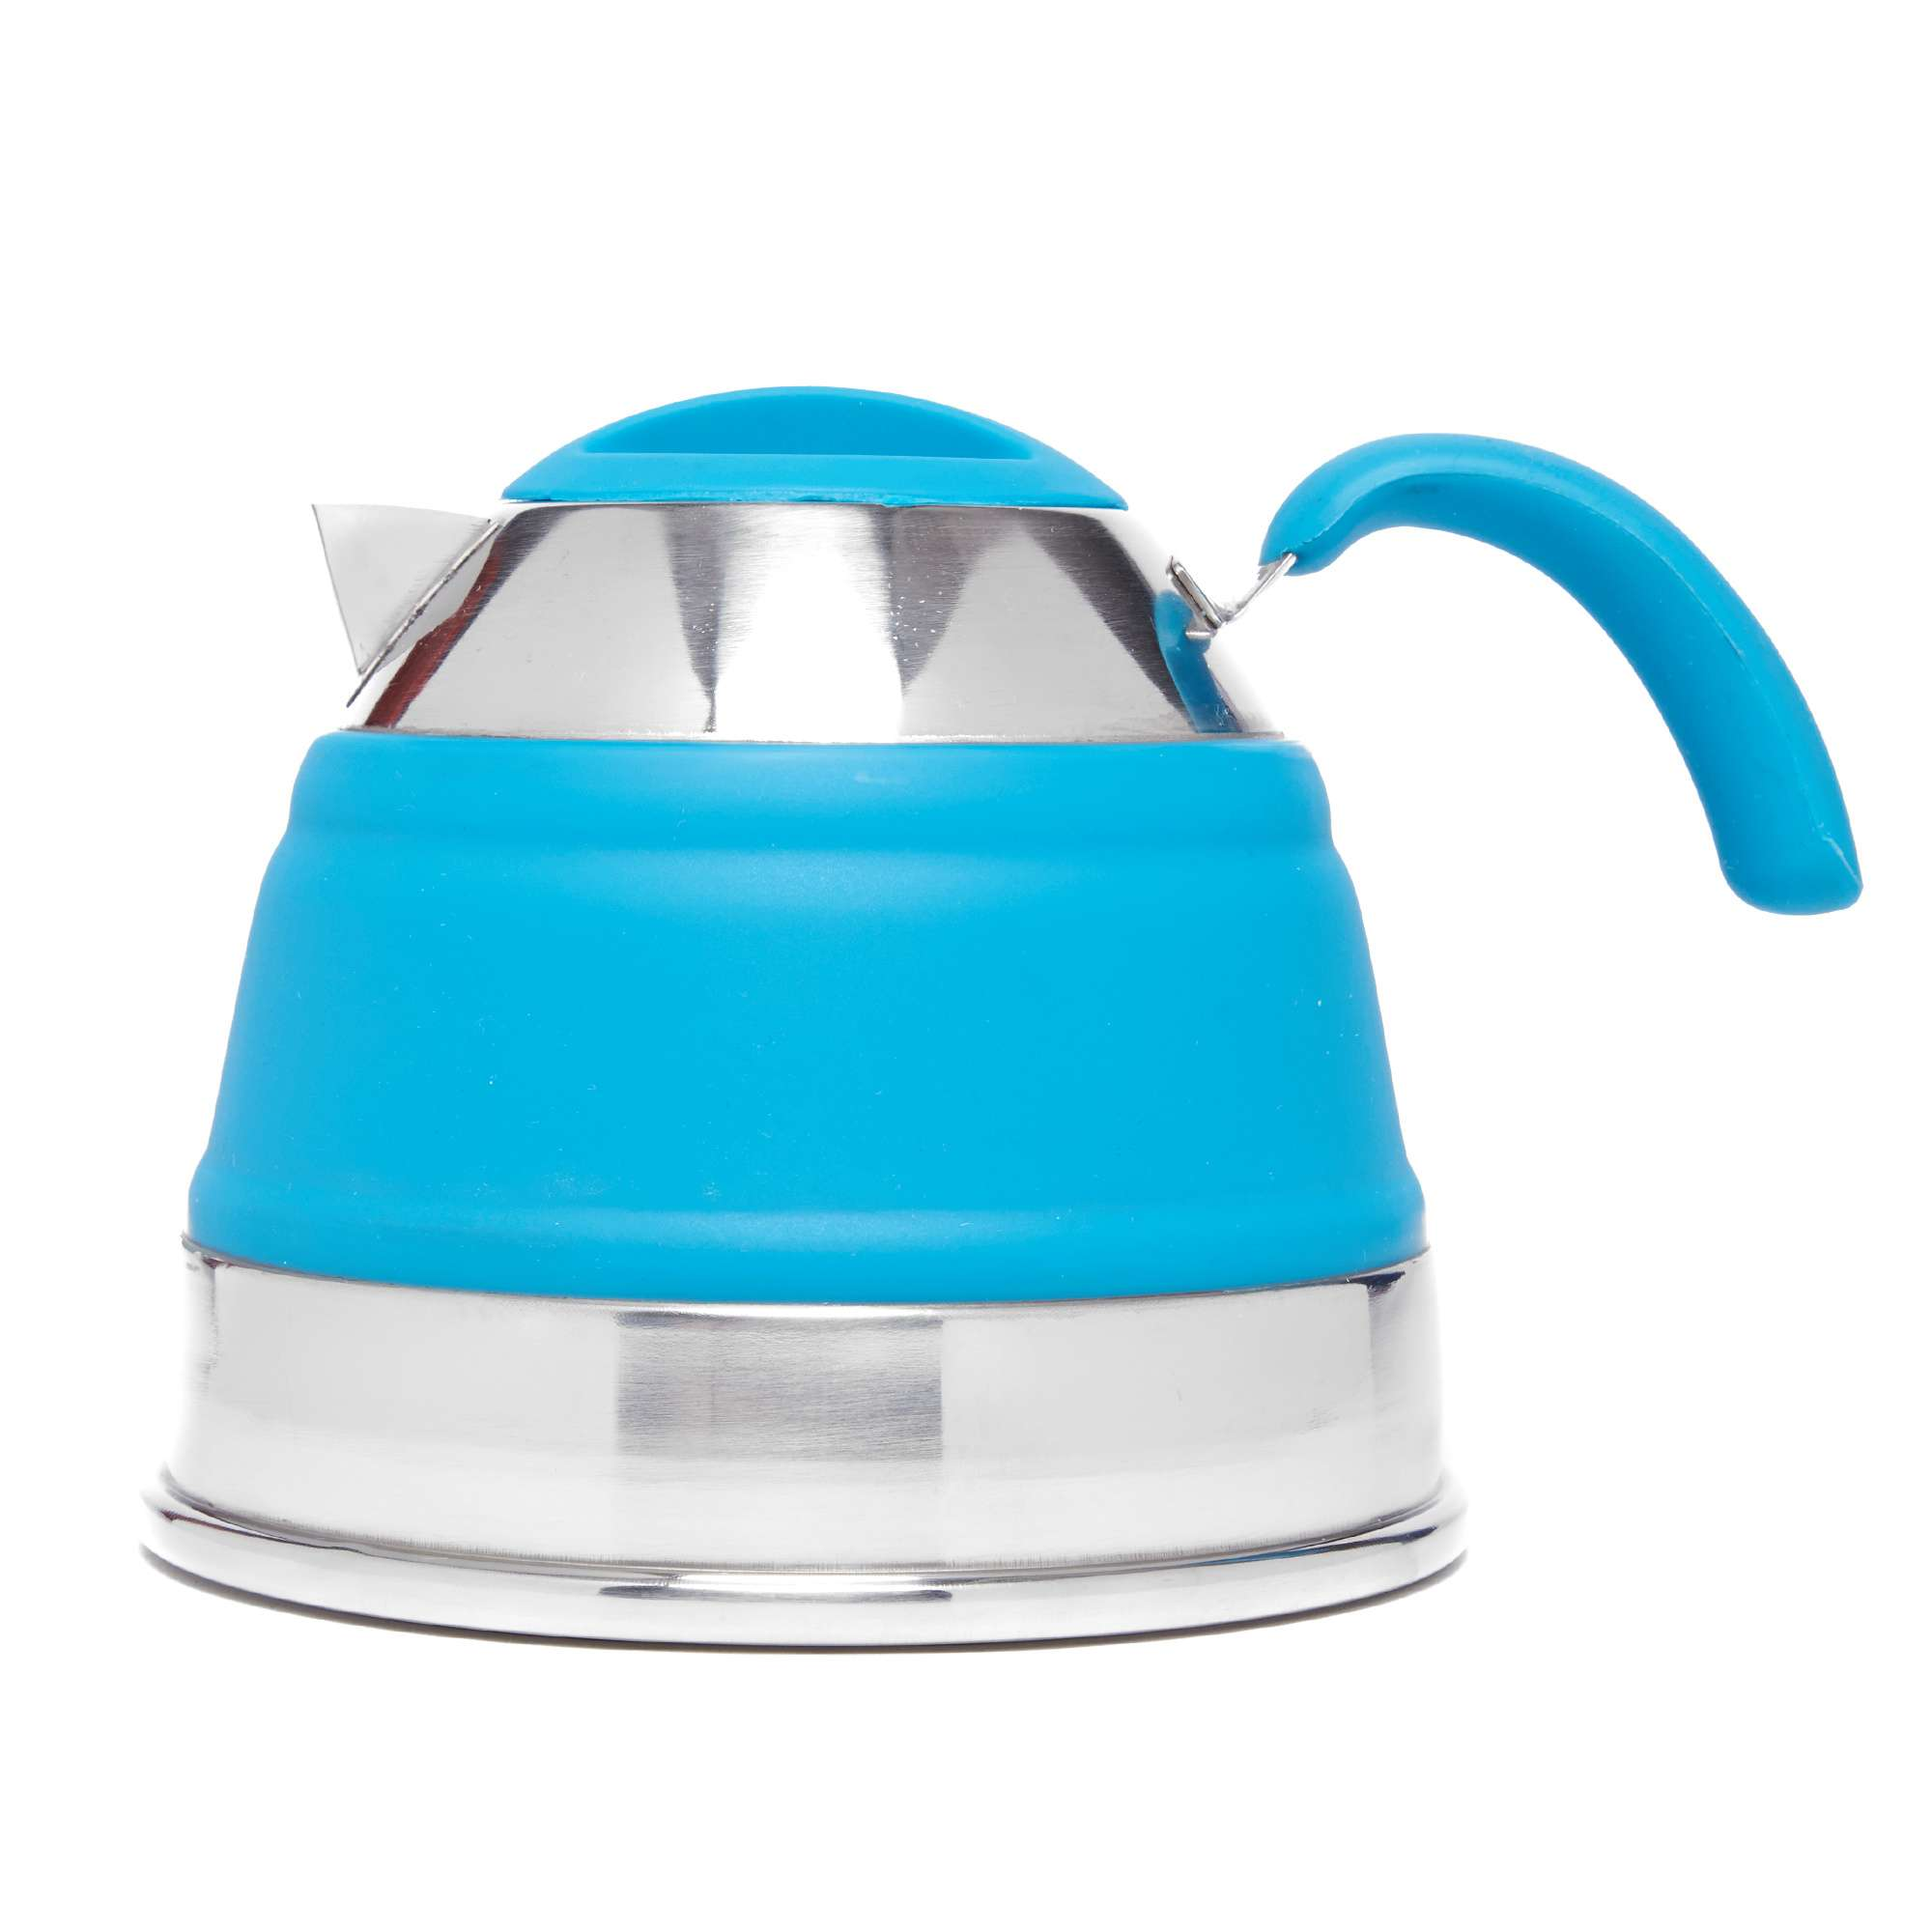 OUTWELL Collapsible Kettle